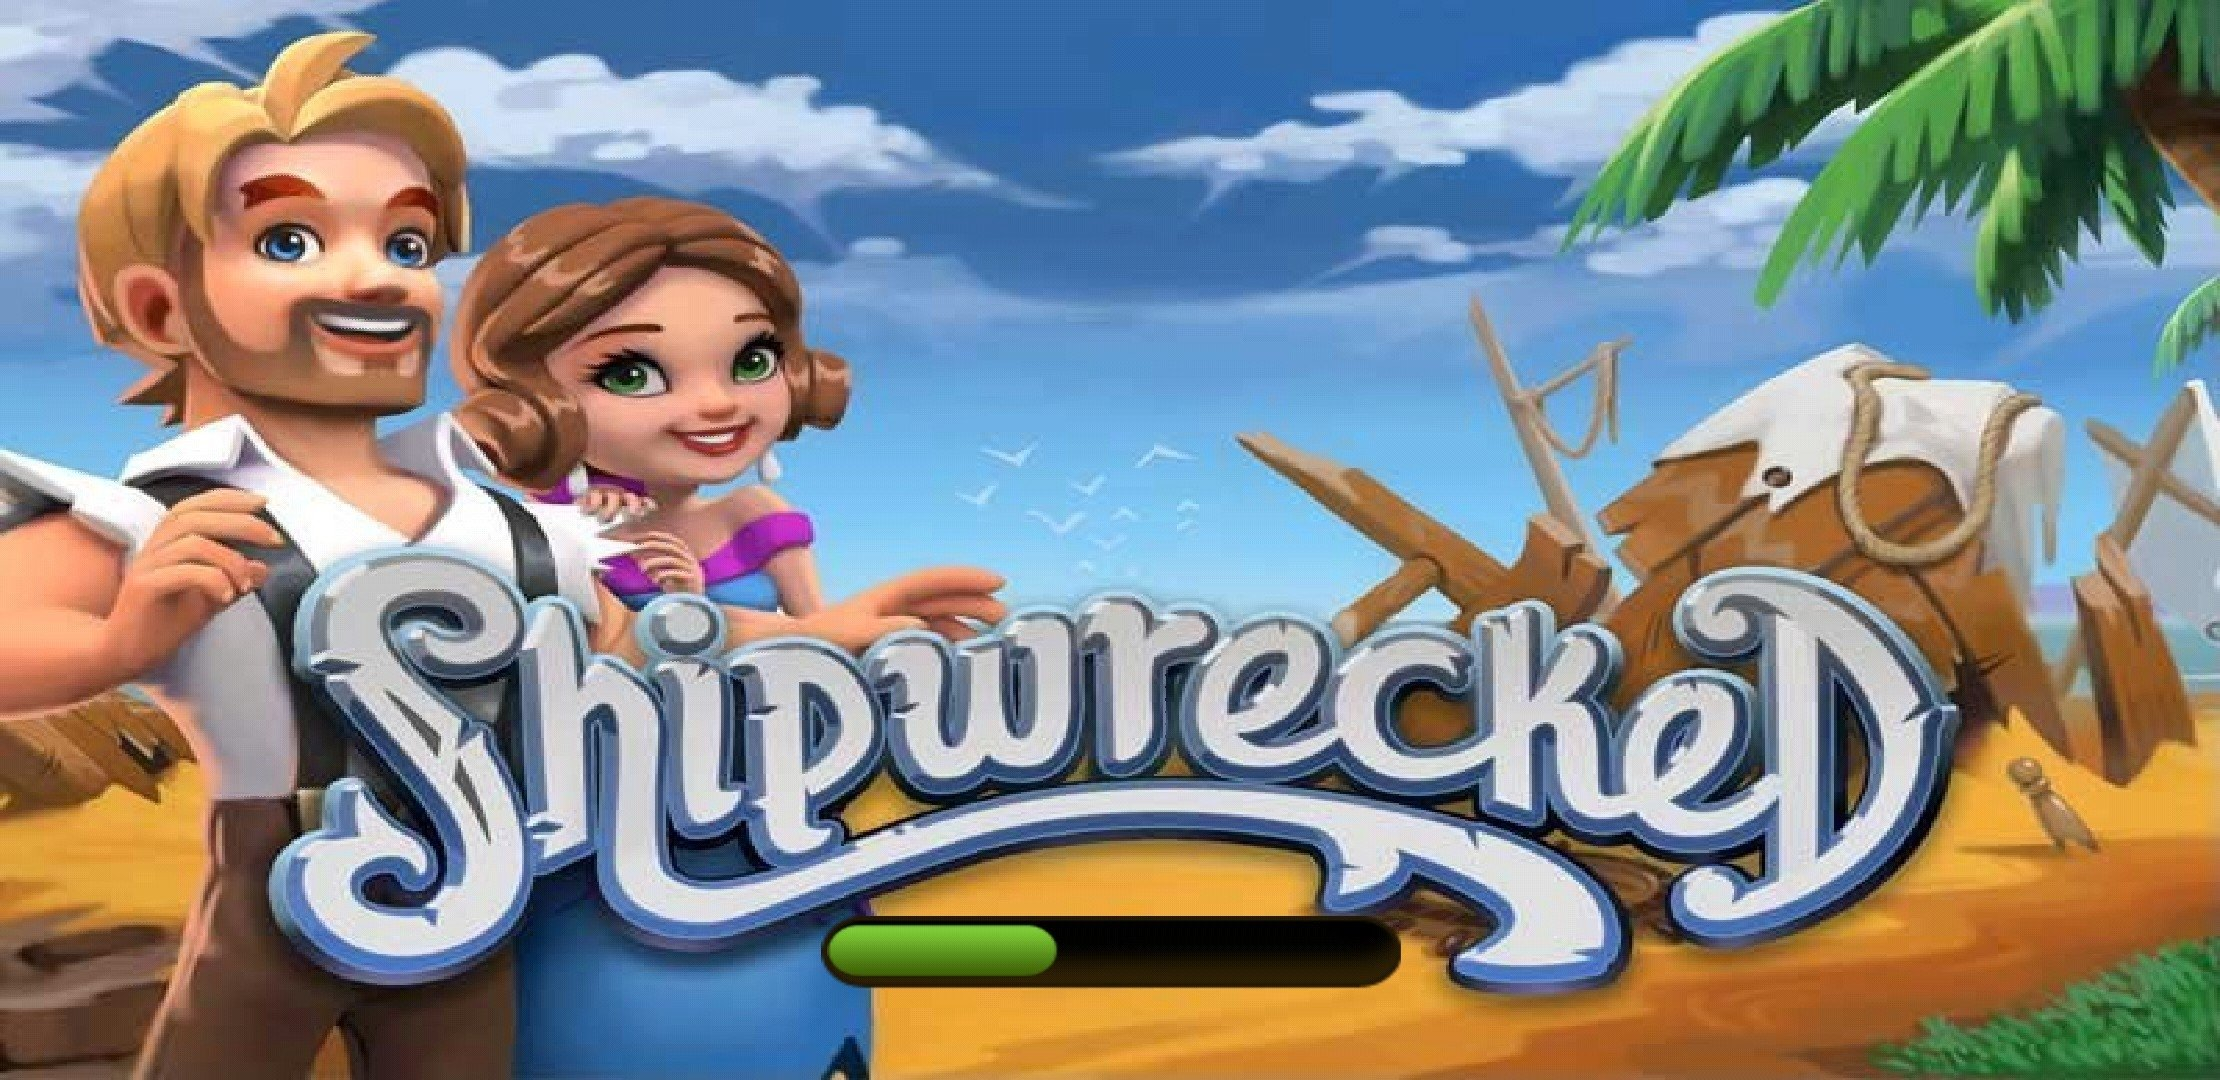 Shipwrecked: Lost Island Android image 5